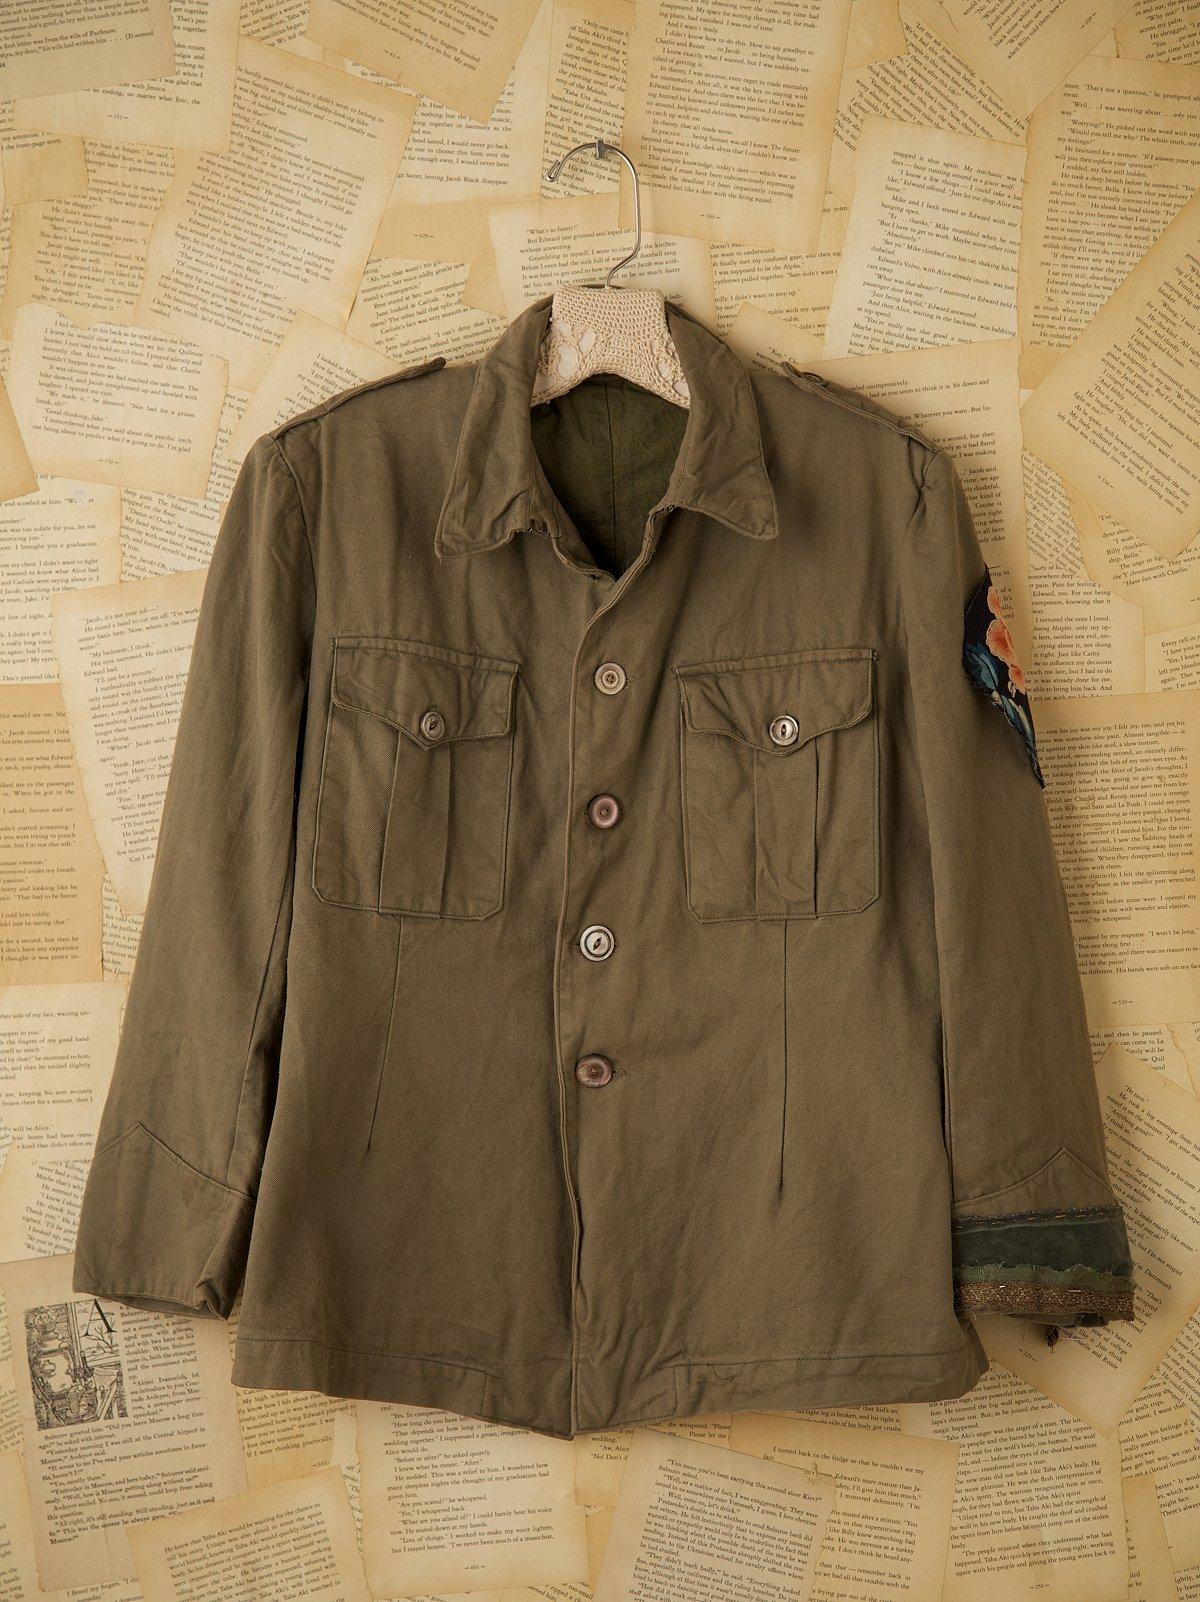 Vintage Green Military Jacket with Velvet Trim